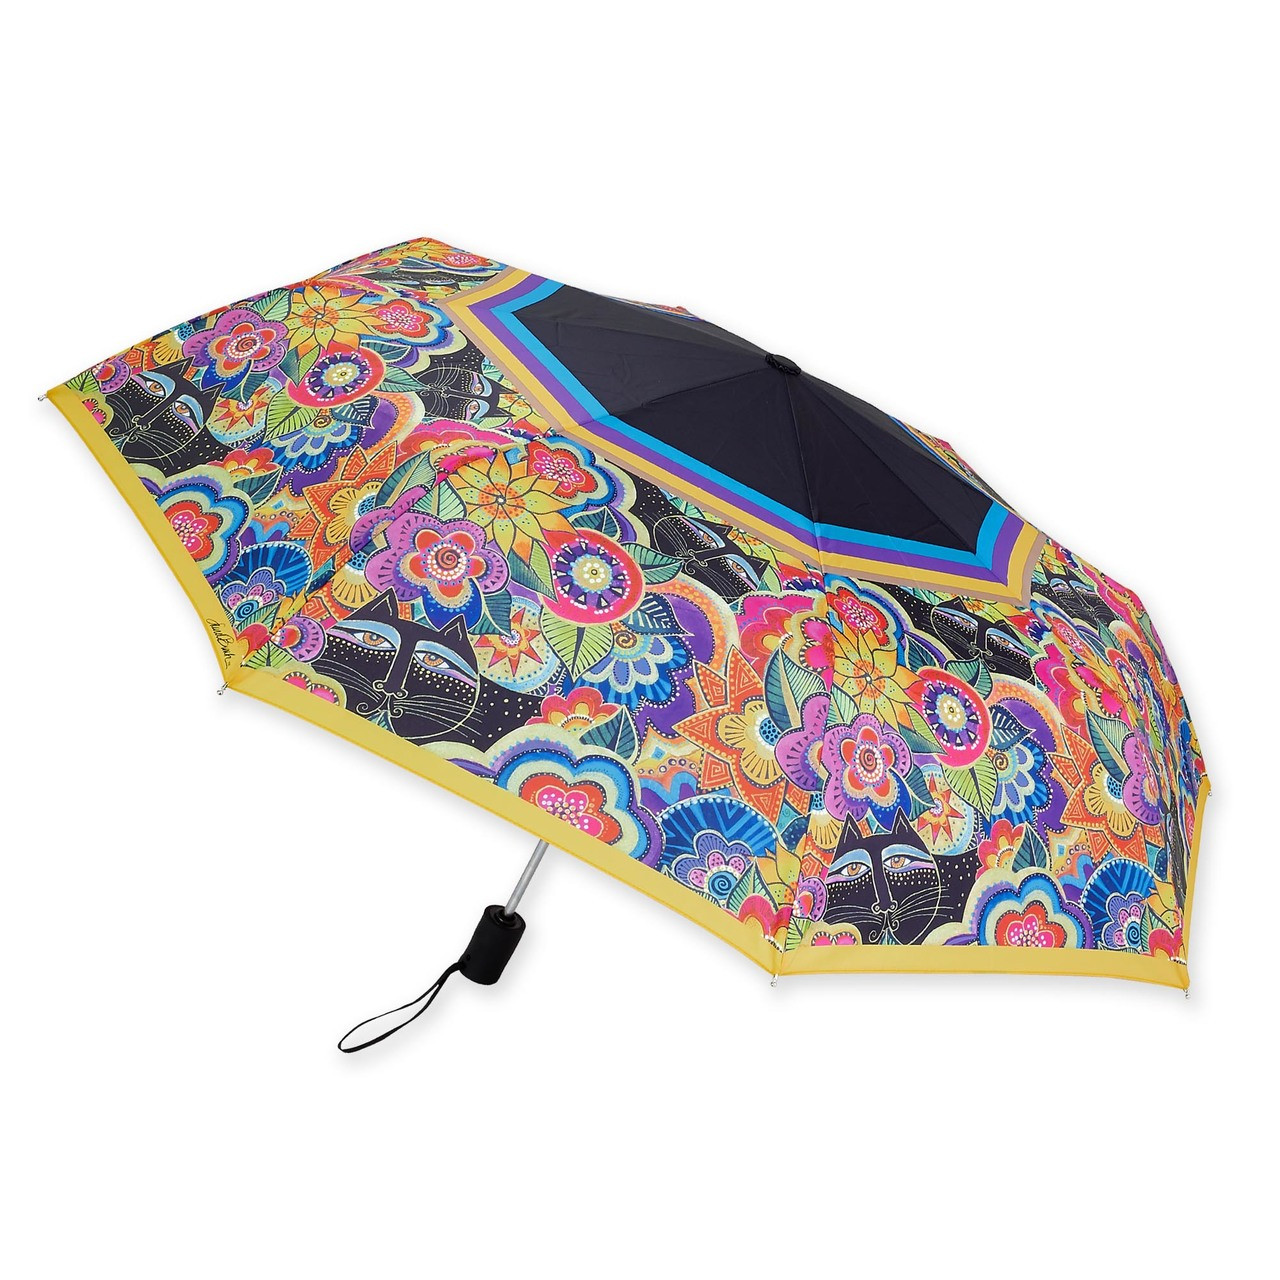 Umbrellas as Fashion Accessories: How to Choose an Umbrella images